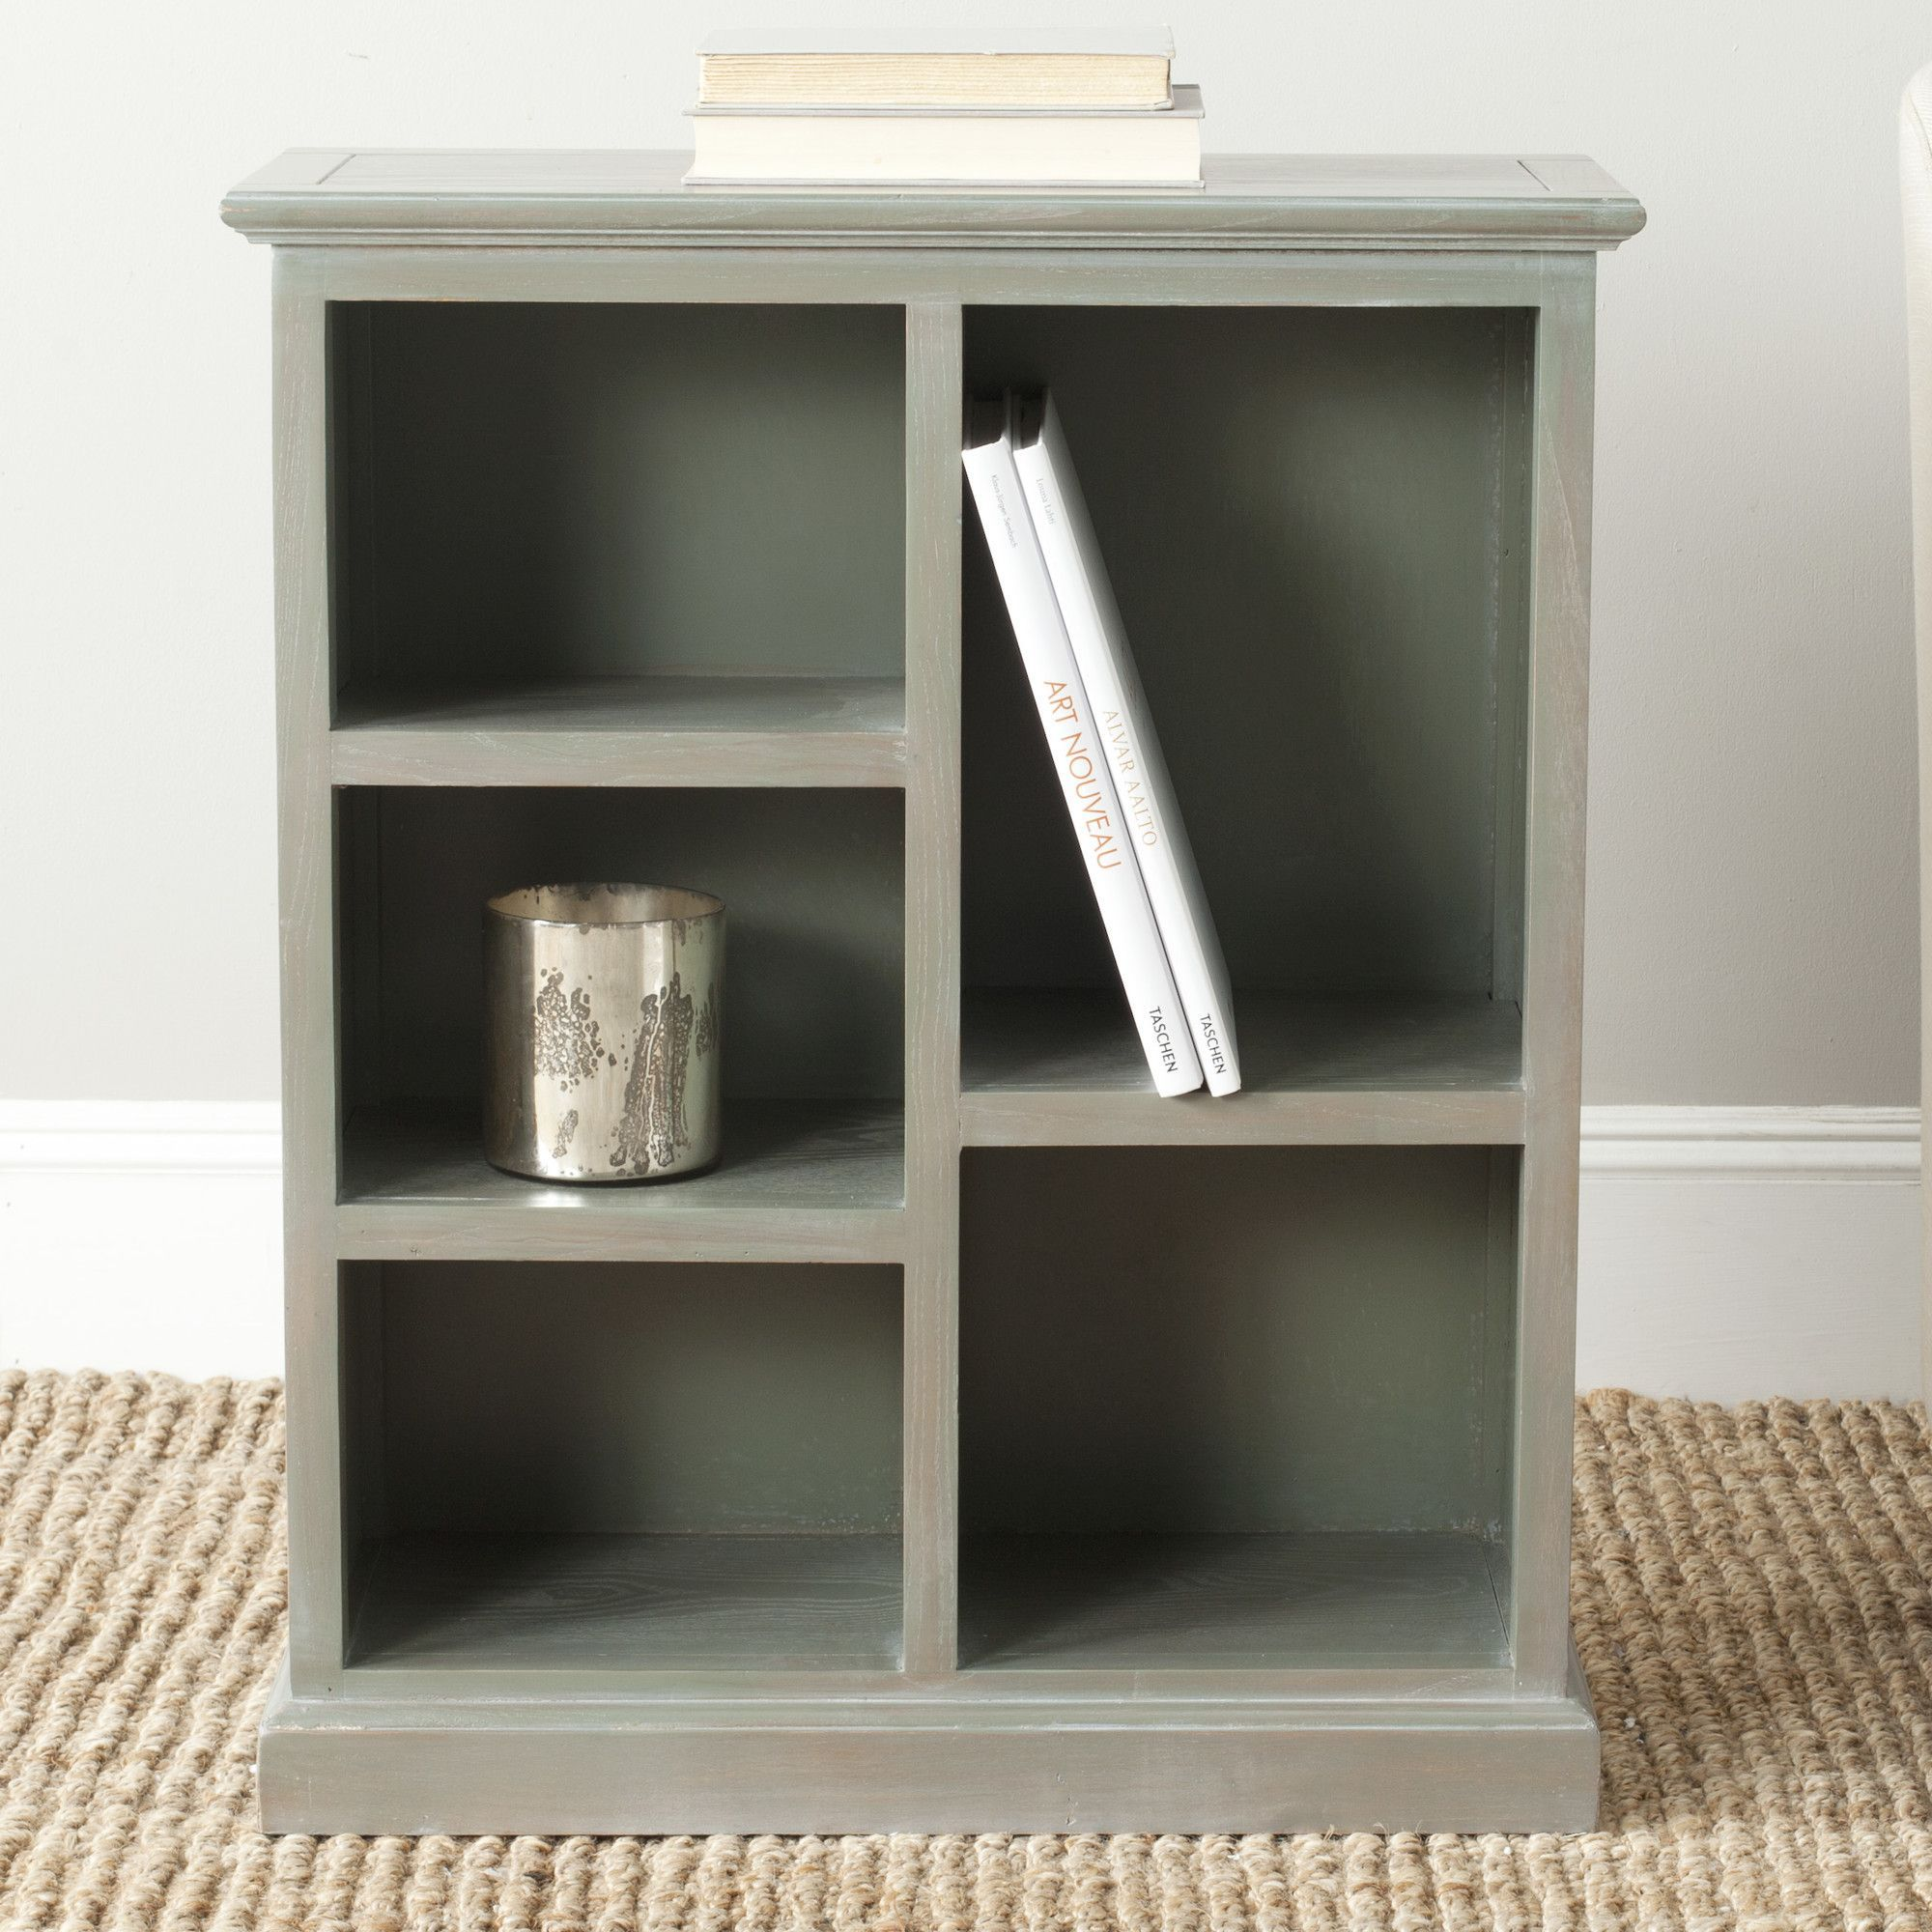 inch garden industrial bookcases bookcase free overstock shipping wood product today home